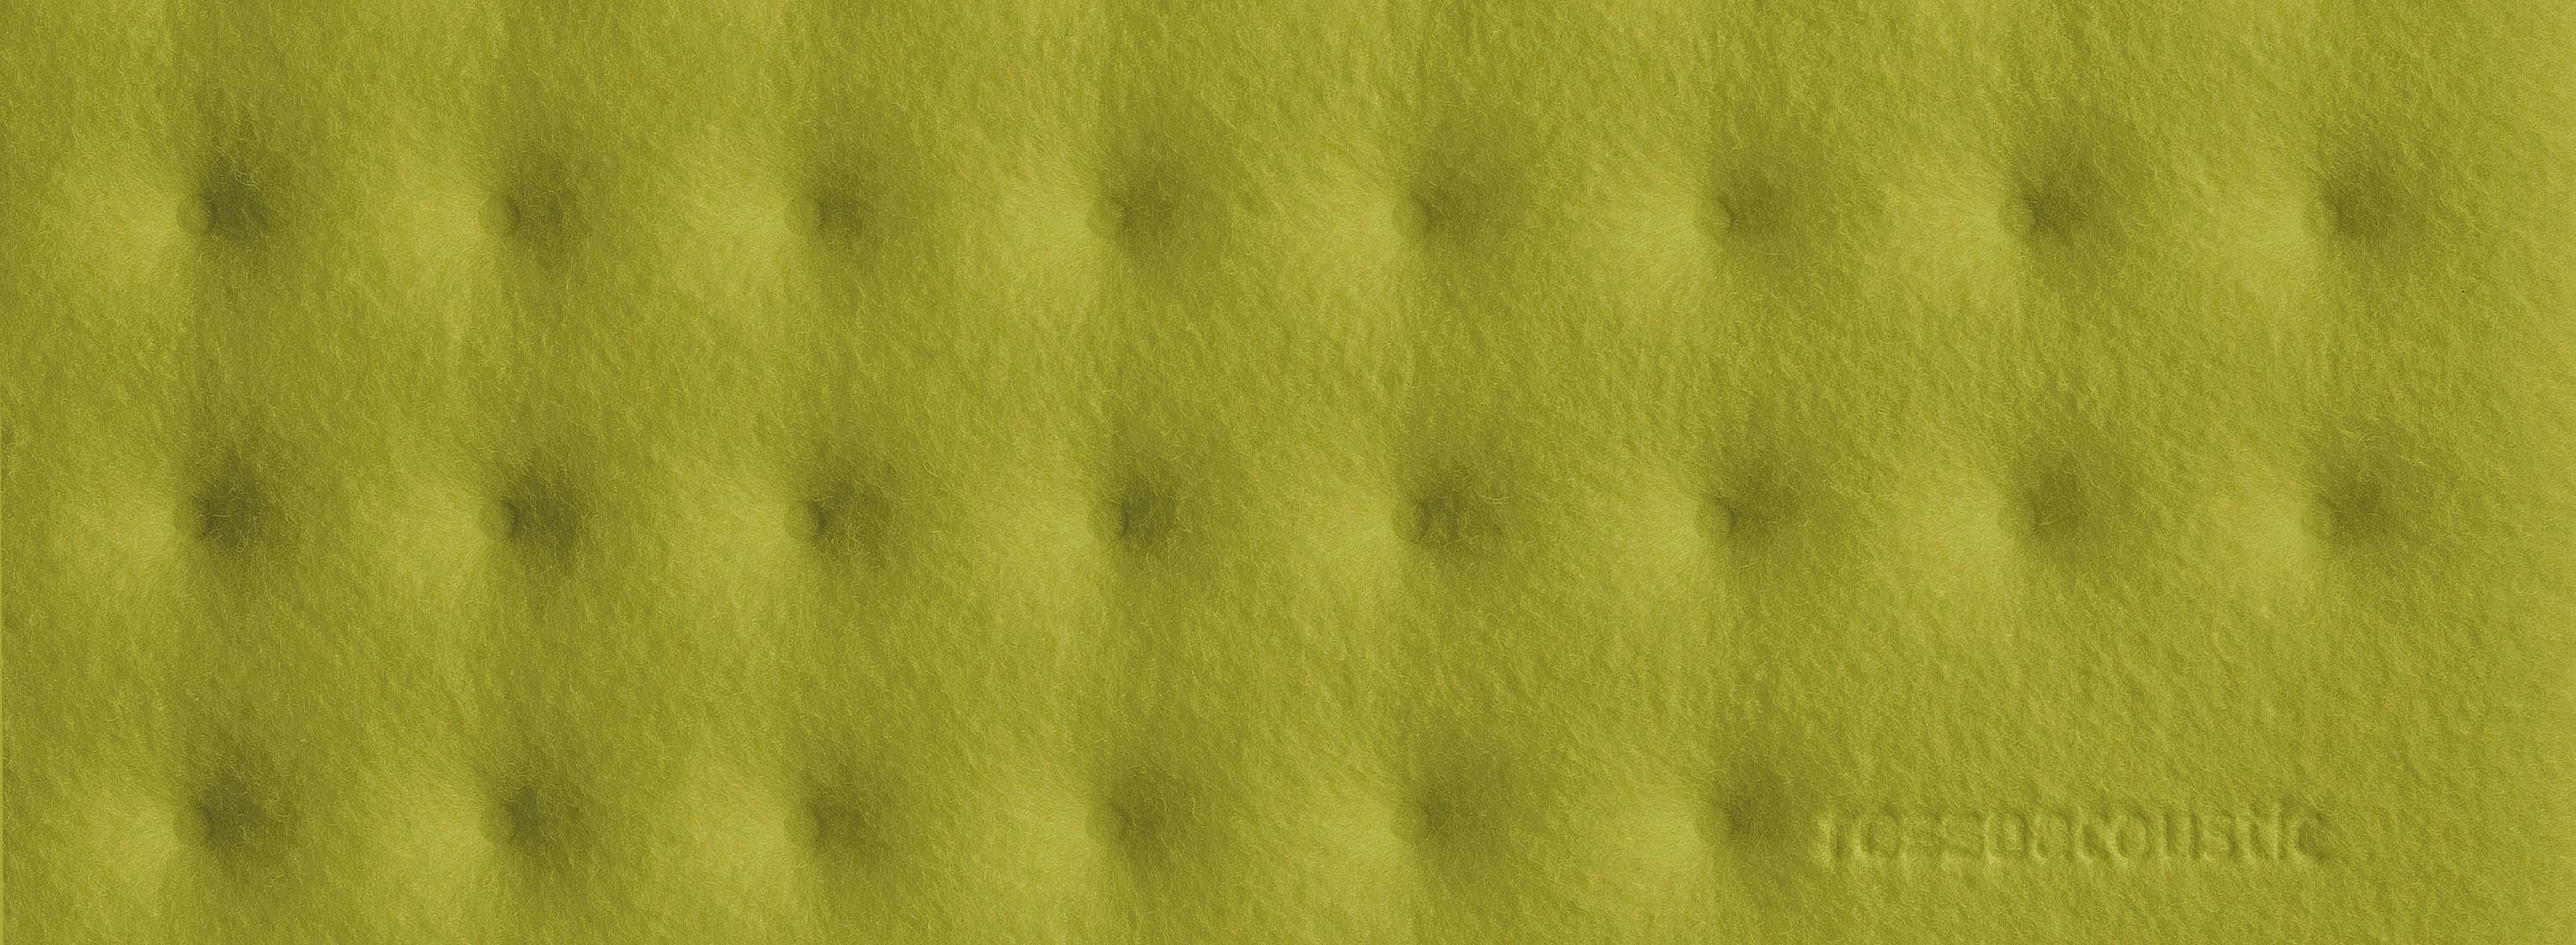 Rossoacoustic PAD R 600 Basic, Ø696 x 25 mm, soft moss